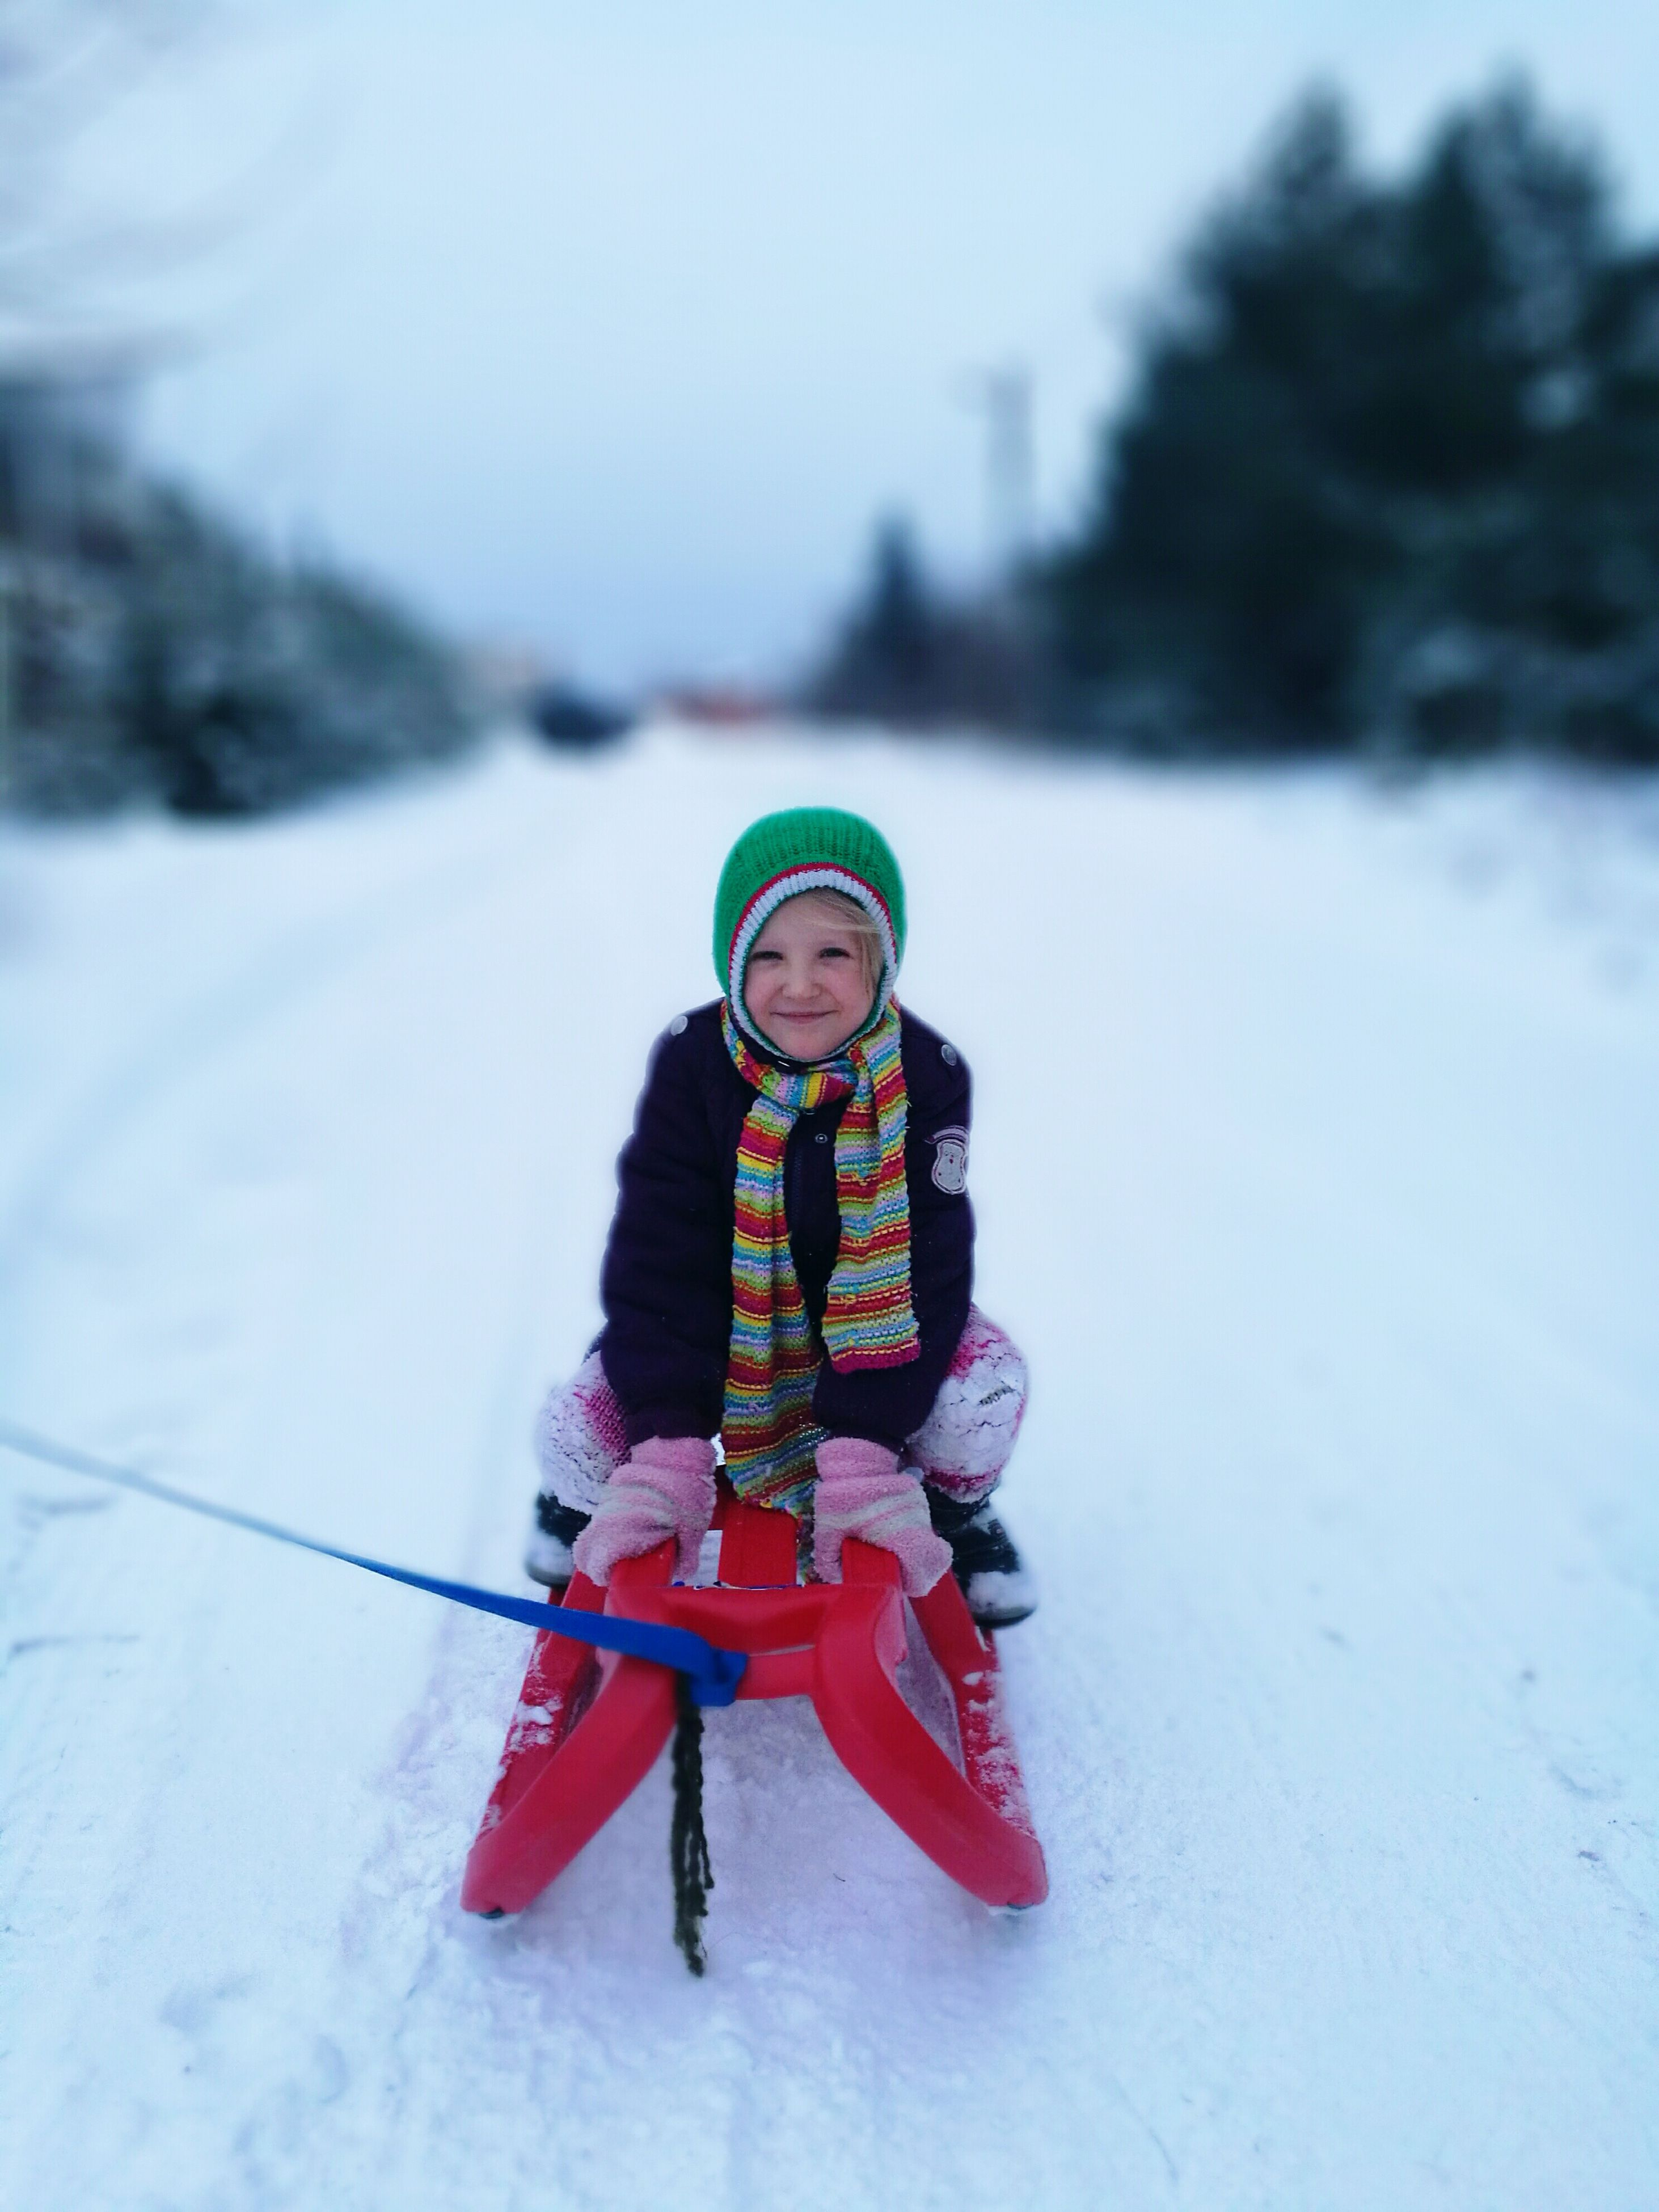 winter, snow, child, warm clothing, cold temperature, one person, ski-wear, childhood, children only, people, ski holiday, ski goggles, sled, playing, knit hat, outdoors, winter sport, one girl only, sport, tobogganing, vacations, happiness, snowboarding, day, mountain, ski jacket, young adult, nature, headwear, adult